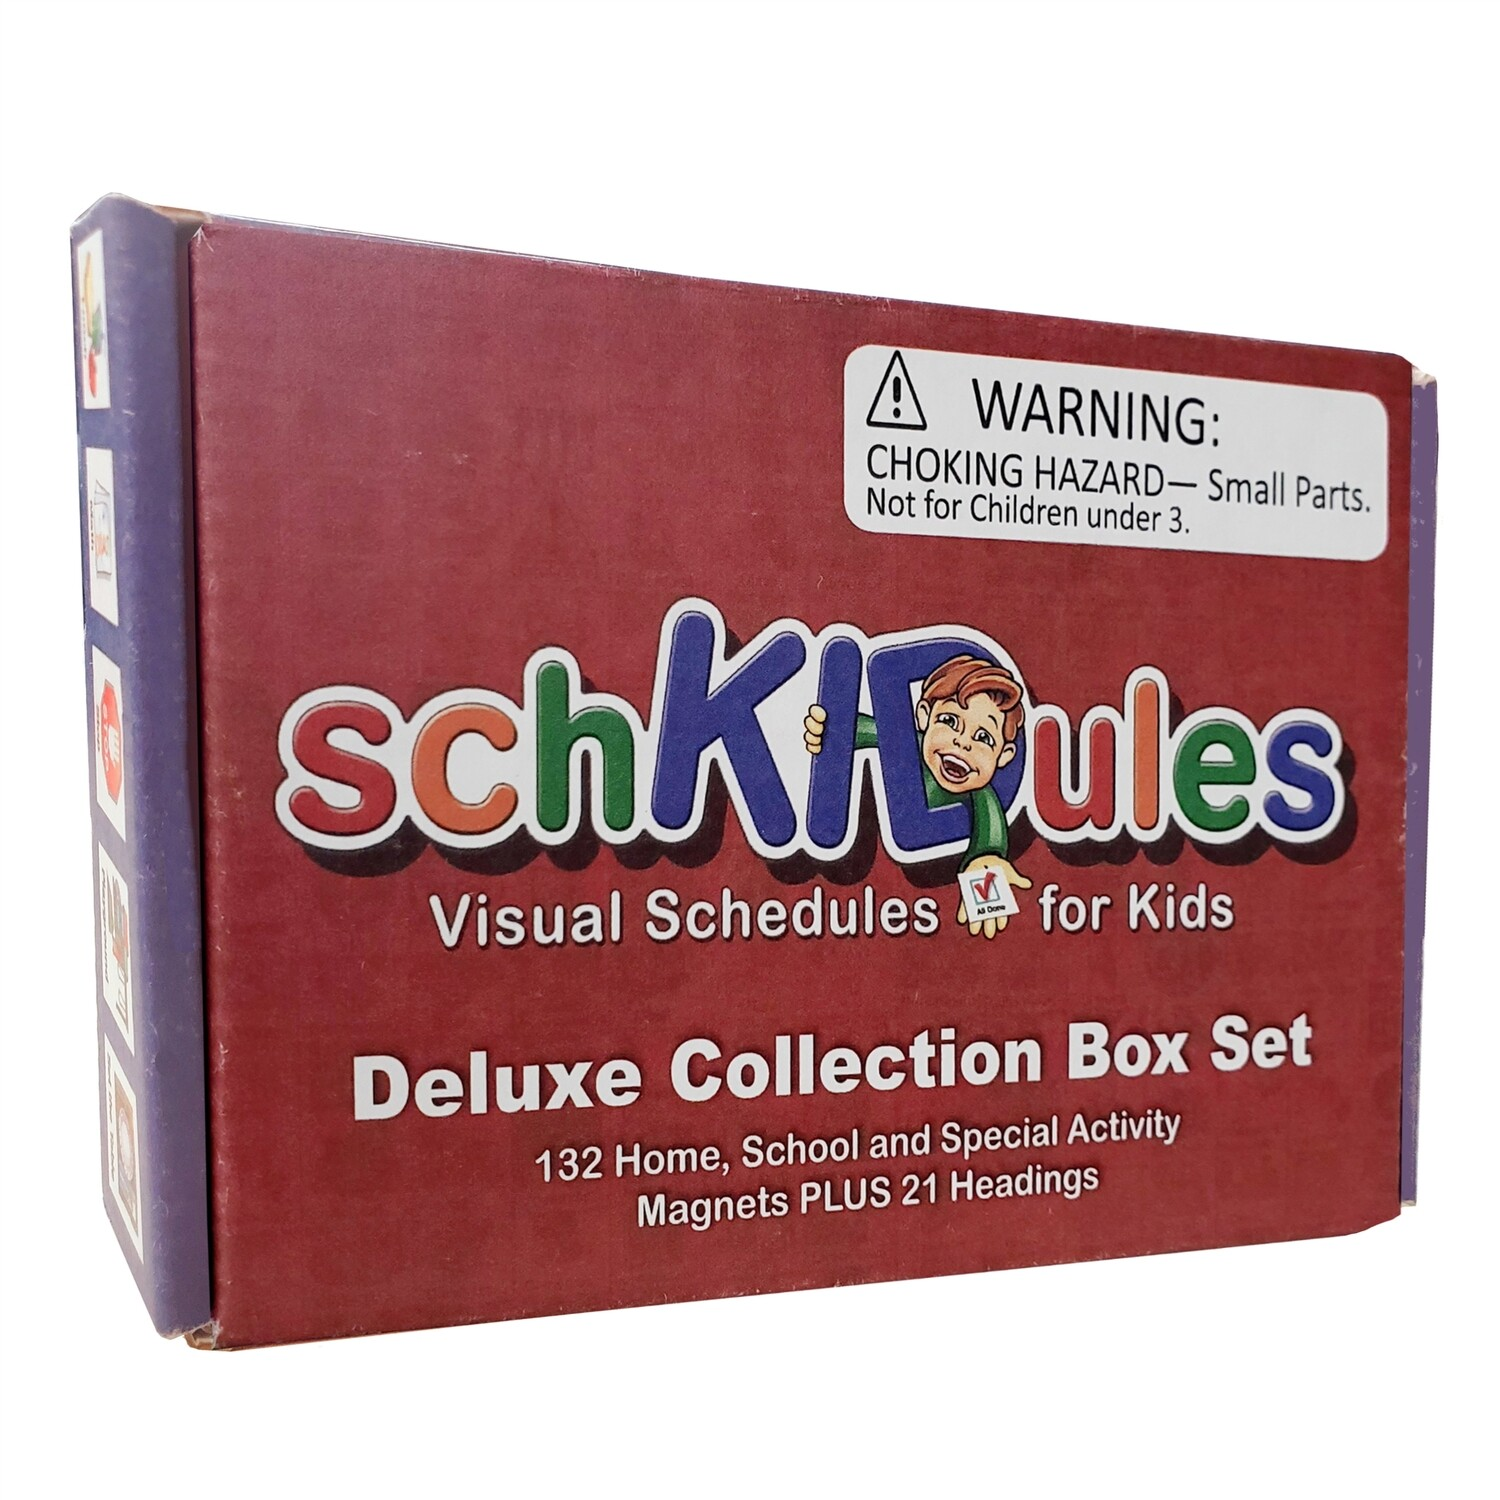 Deluxe Collection Box Set